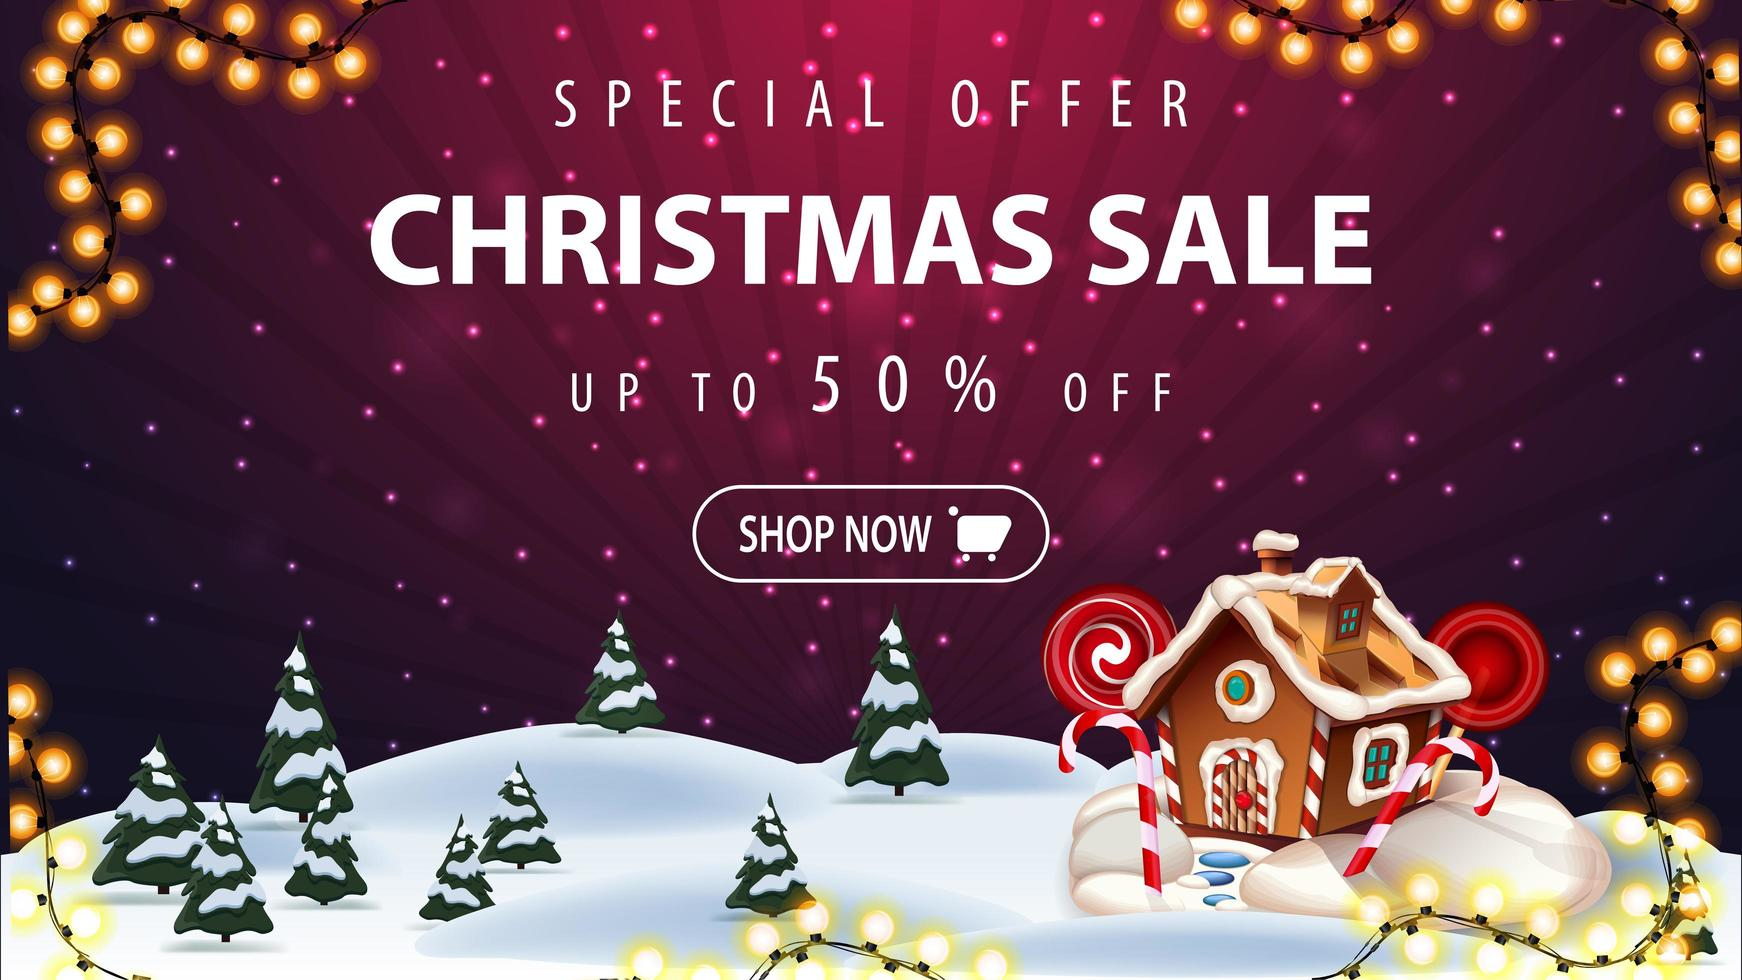 Special offer, Christmas sale, up to 50 off, beautiful purple discount banner with cartoon winter landscape on background and Christmas gingerbread house vector